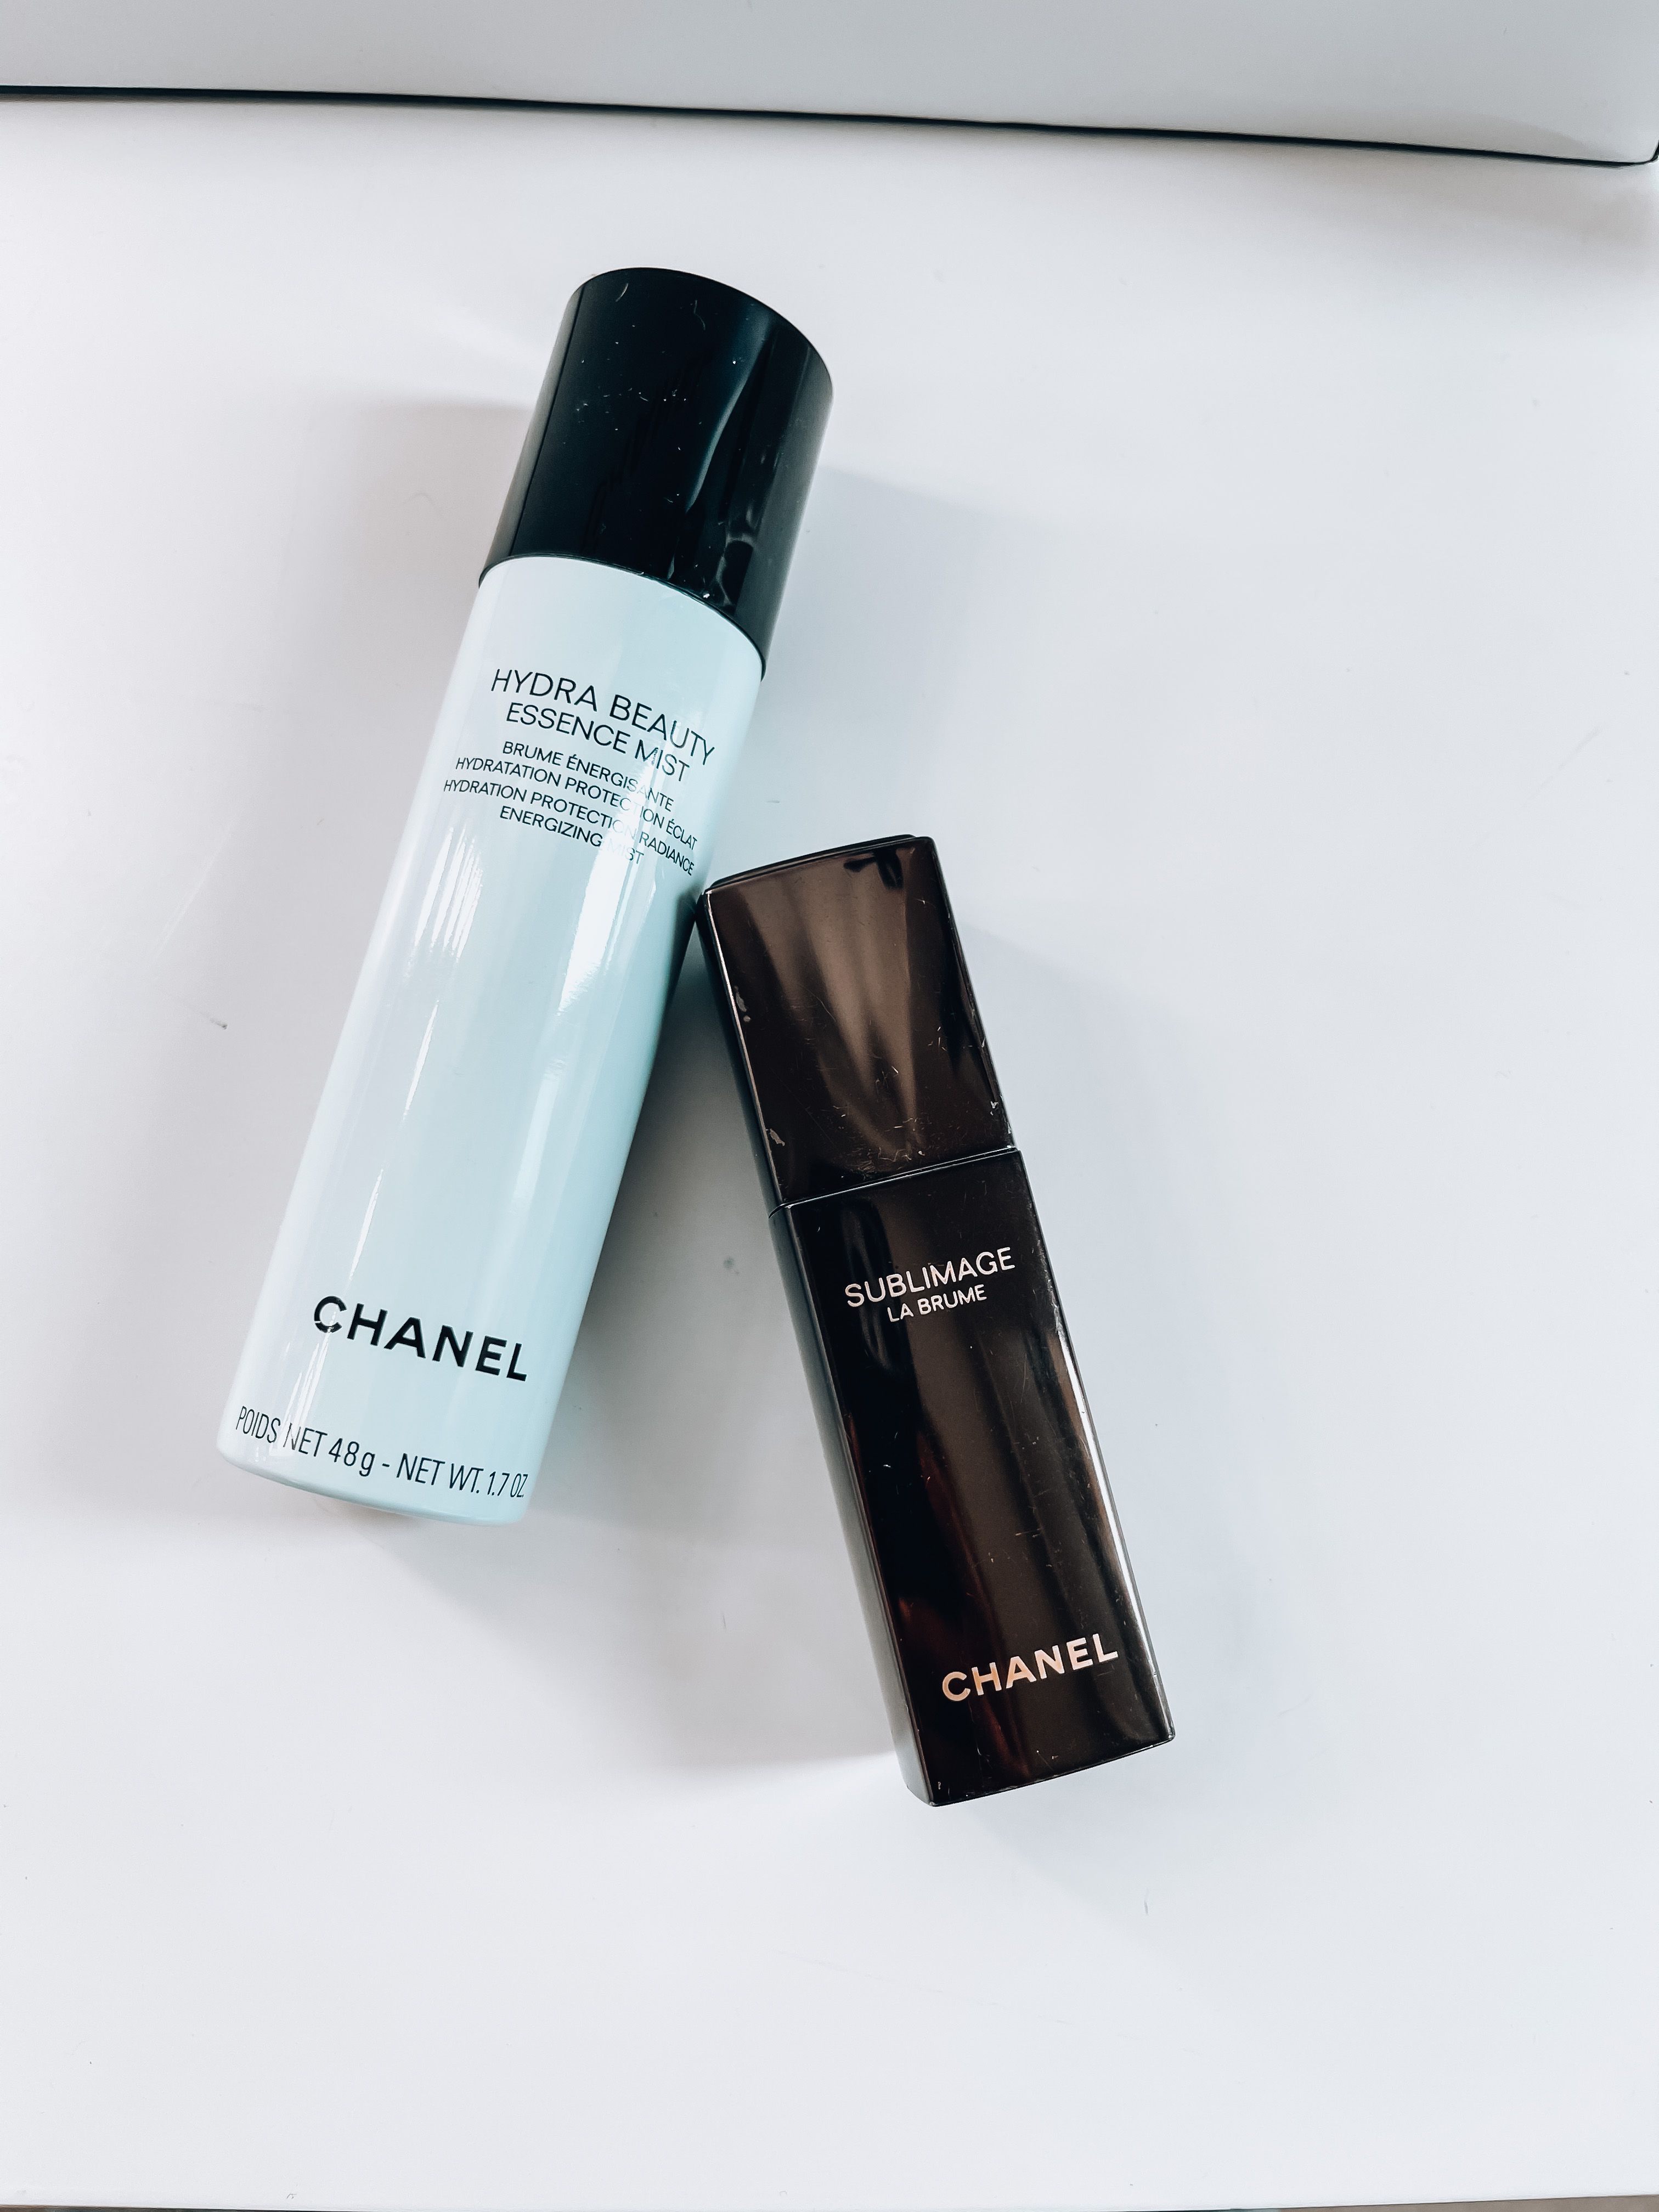 CHANEL spring beauty essentials lizostyle by Rose Ferreira